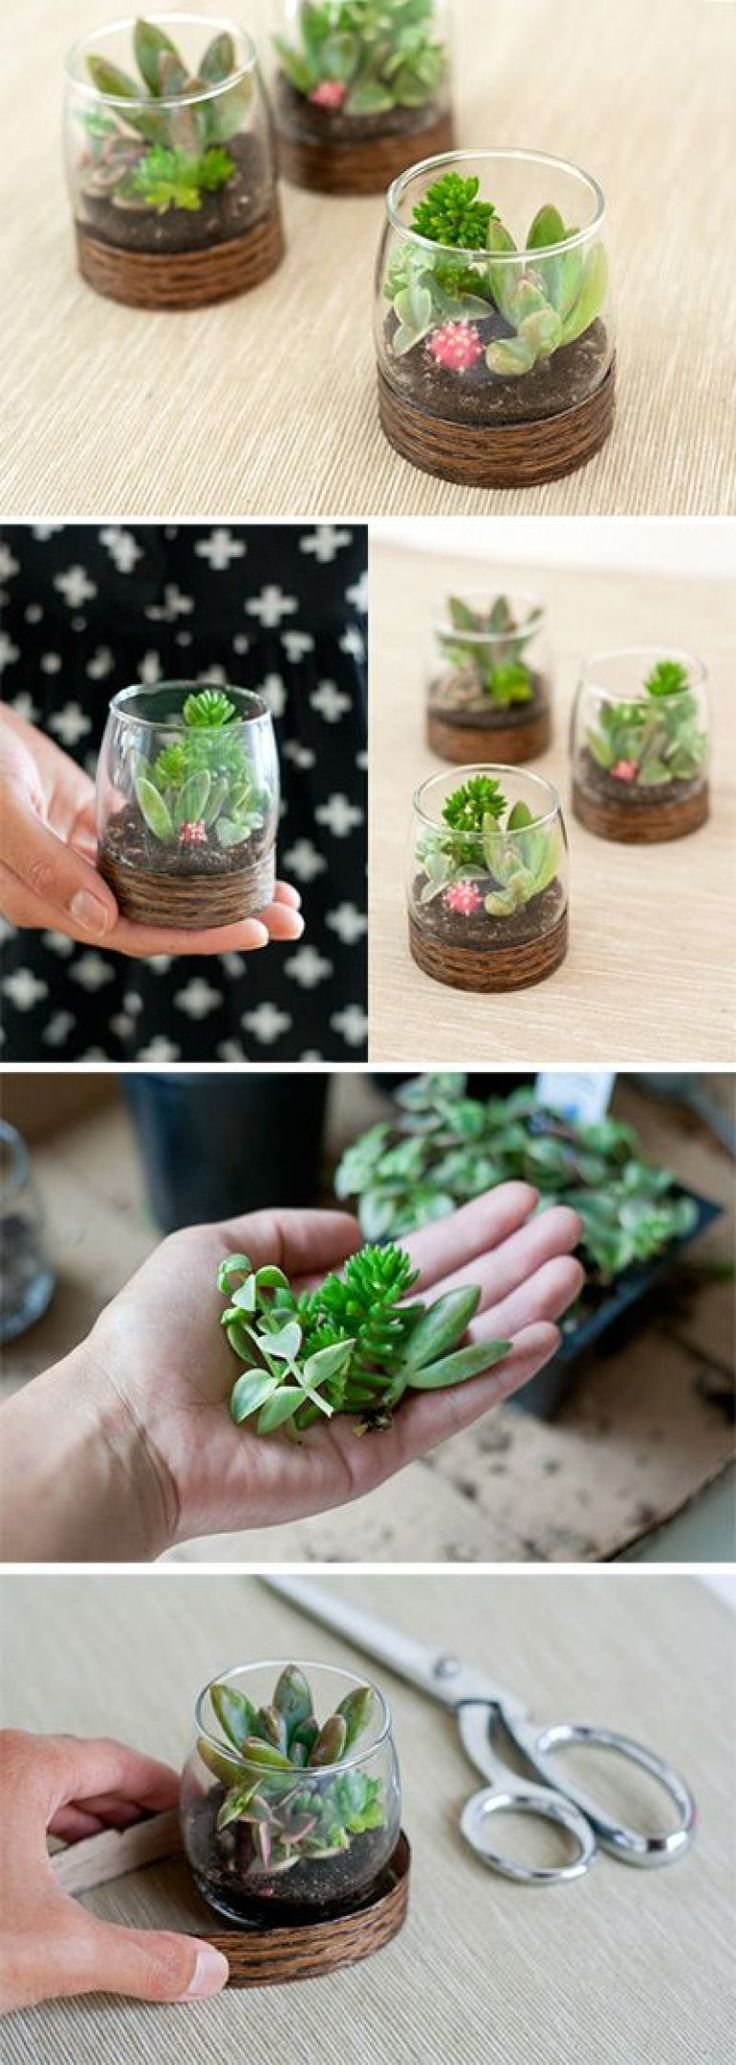 Terrariums have become hugely popular lately. If you